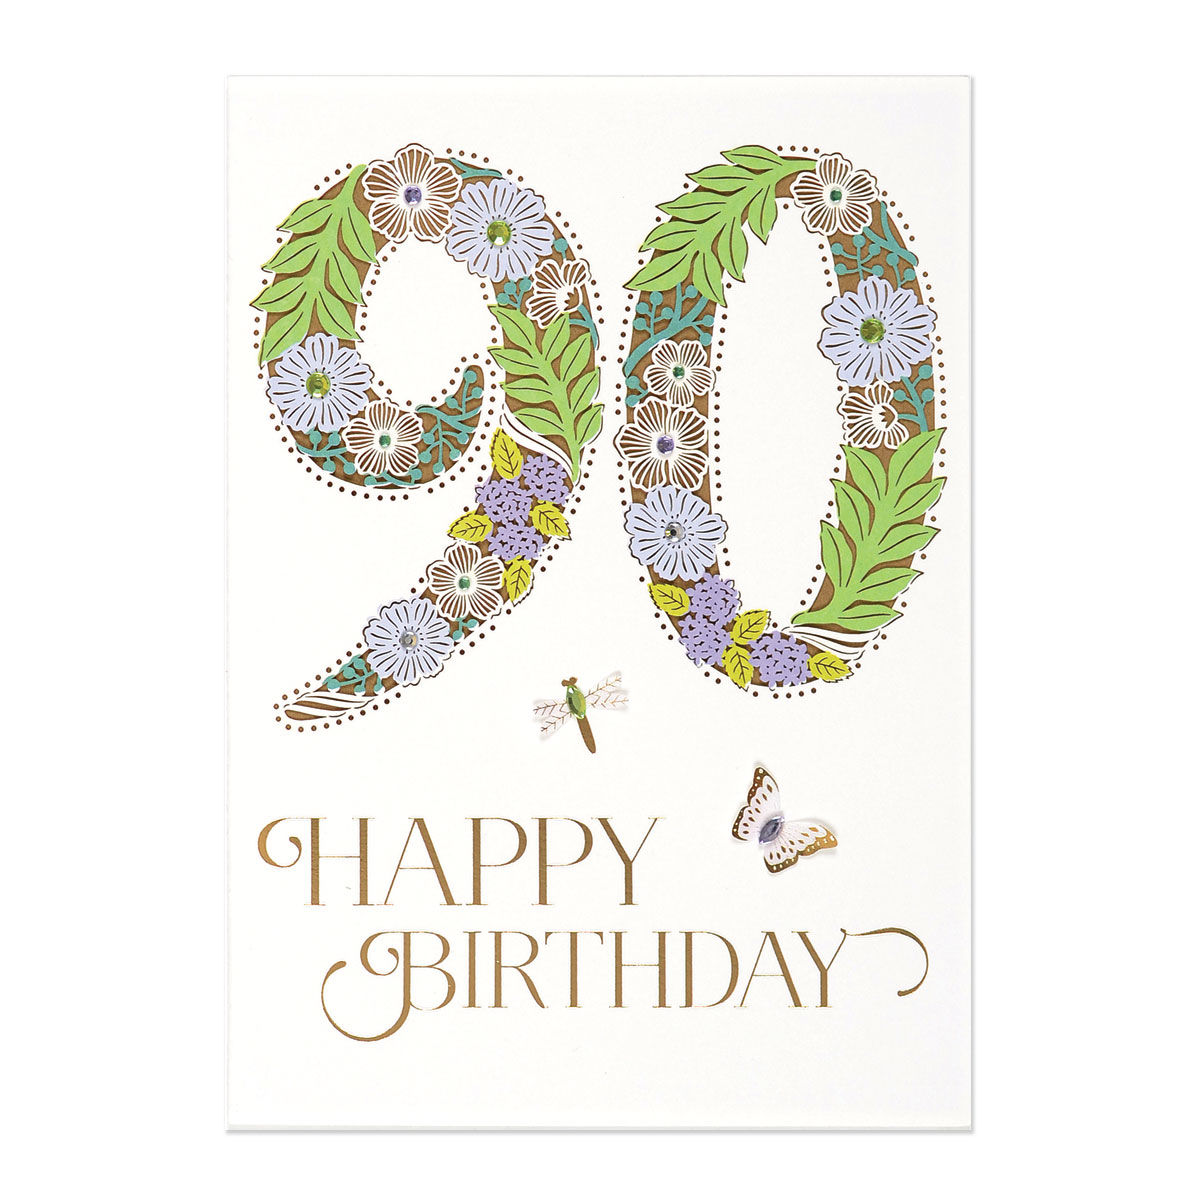 Papyrus greeting card gallery greeting card examples birthday cards papyrus merry christmas postcards good happy new 90th birthday anas papeterie greeting cards stationery bookmarktalkfo Images